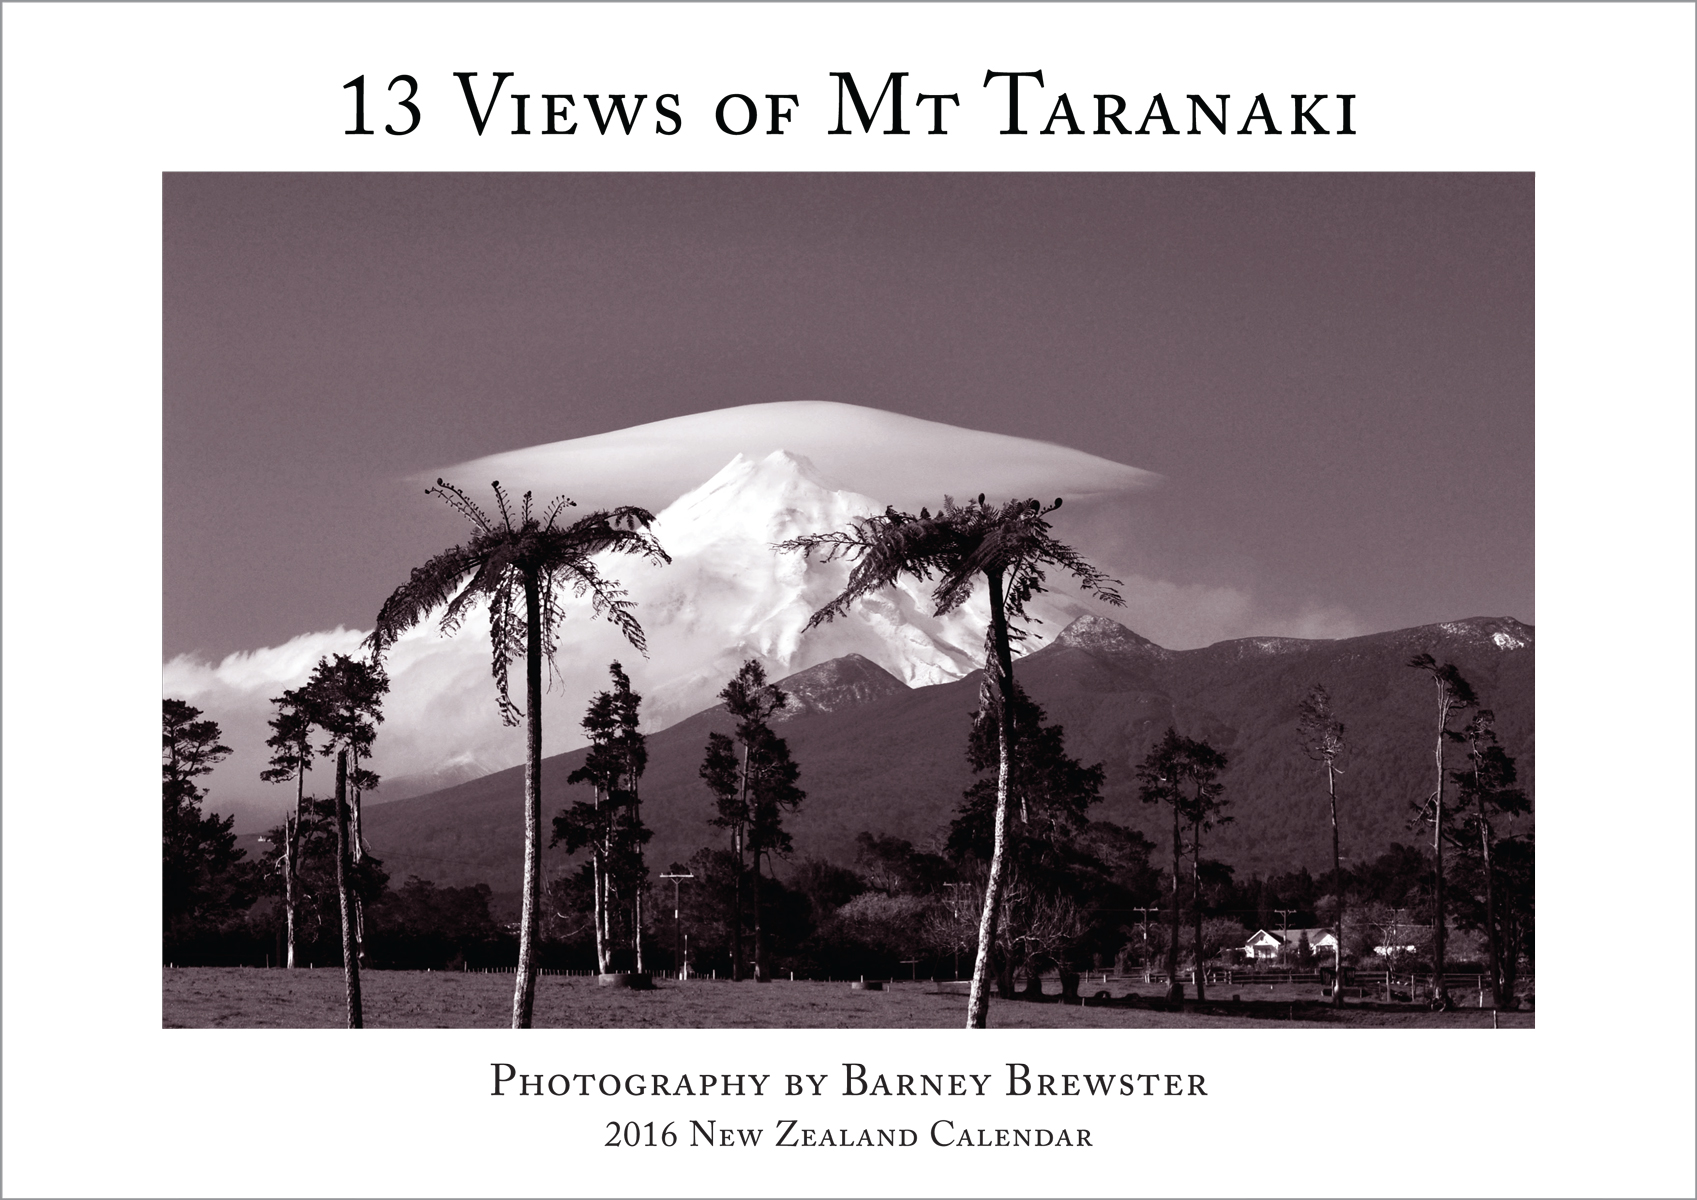 13-Views-of-Mt-Taranaki-Calendar-front